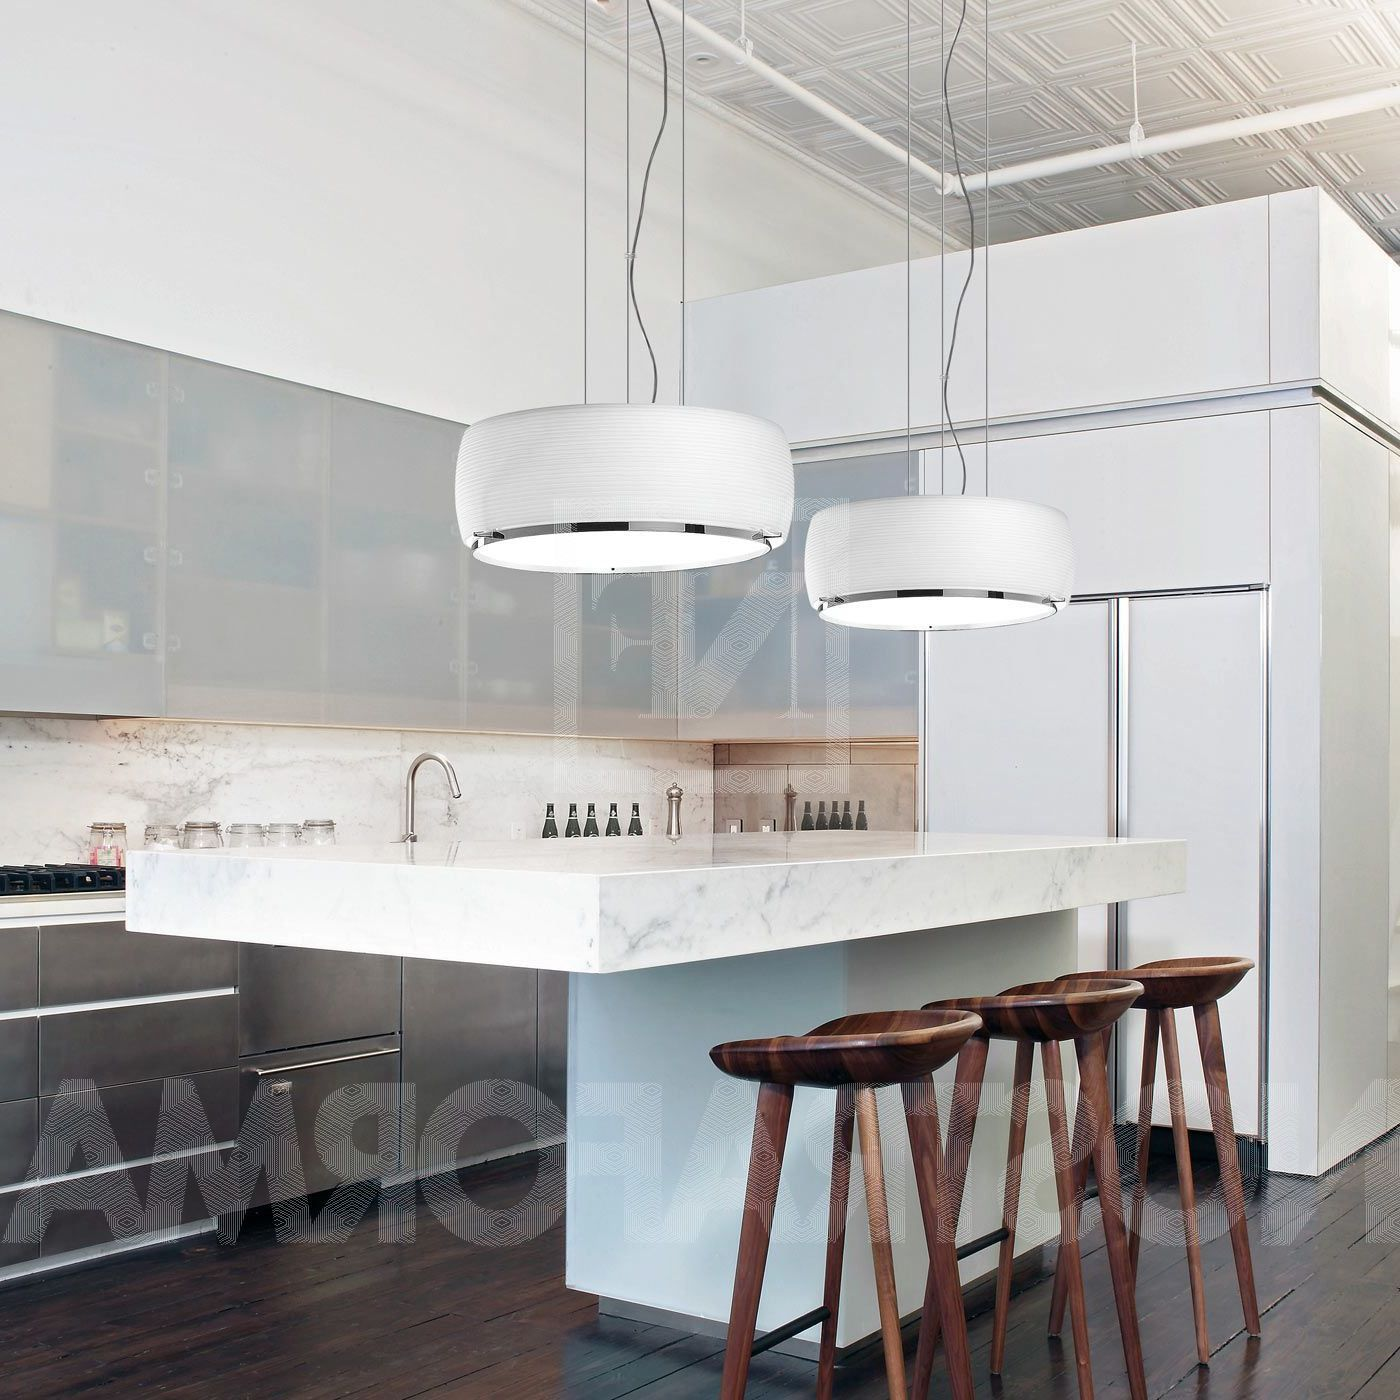 Kitchen Lighting Ceiling Fixtures: Modern Kitchen Kitchen Ceiling Lighting Fixtures Ceiling